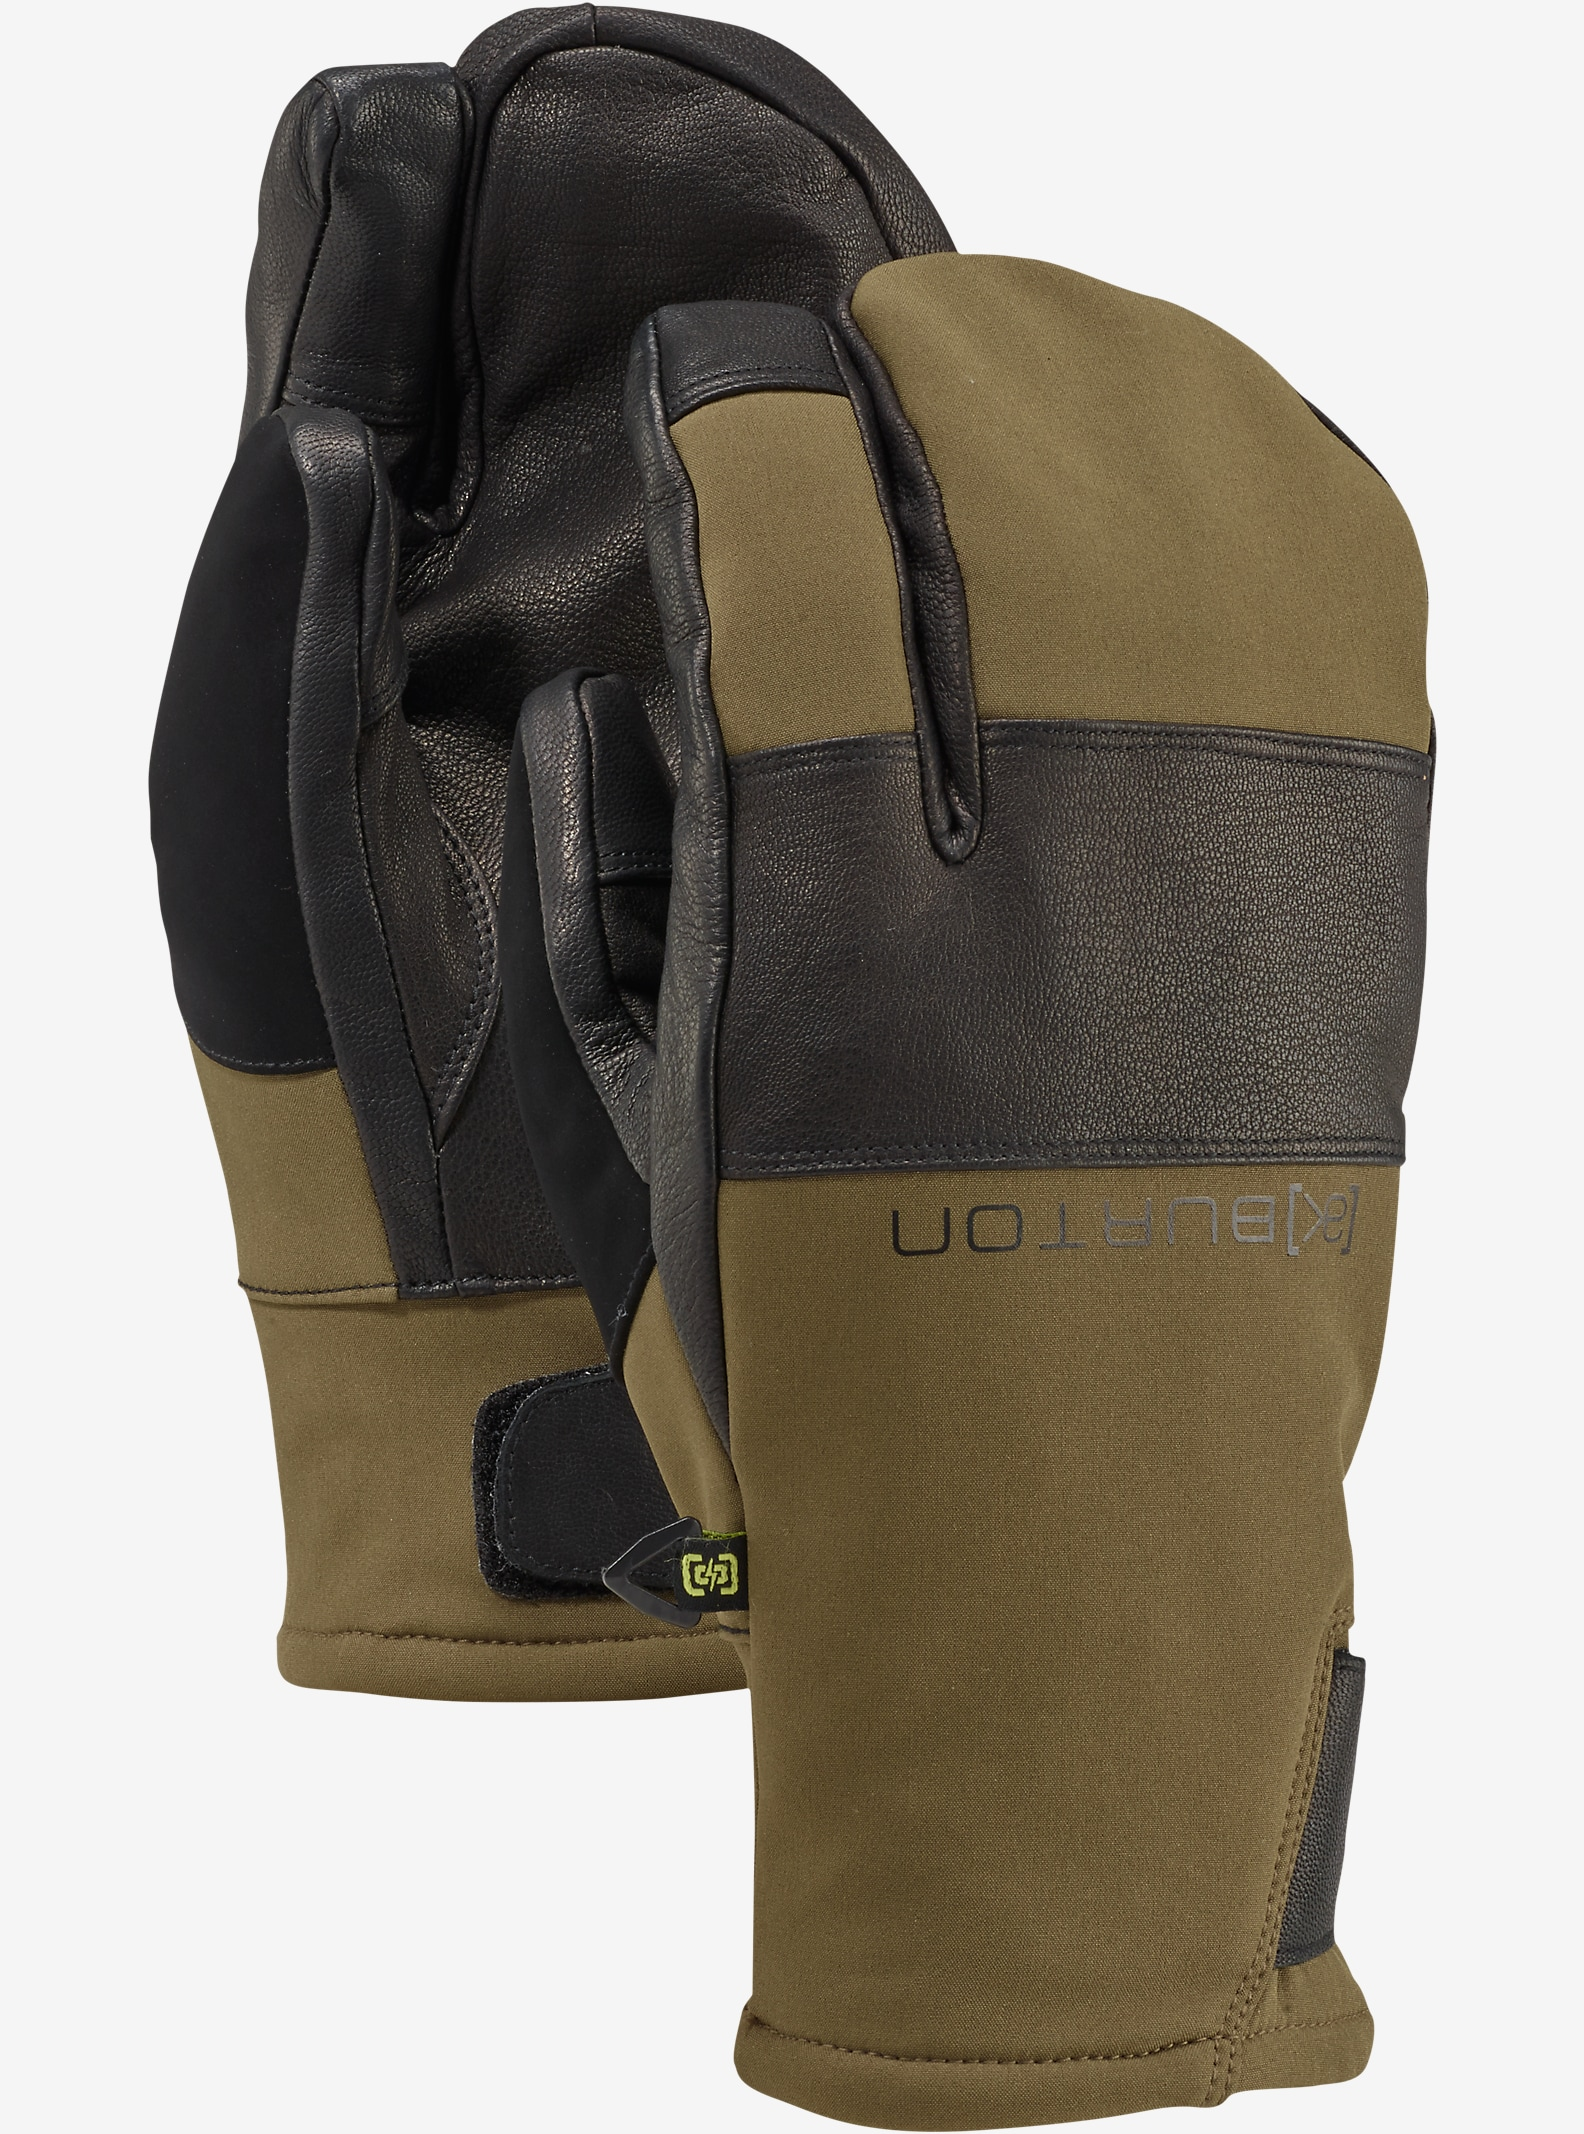 Burton [ak] Clutch Mitt shown in Jungle